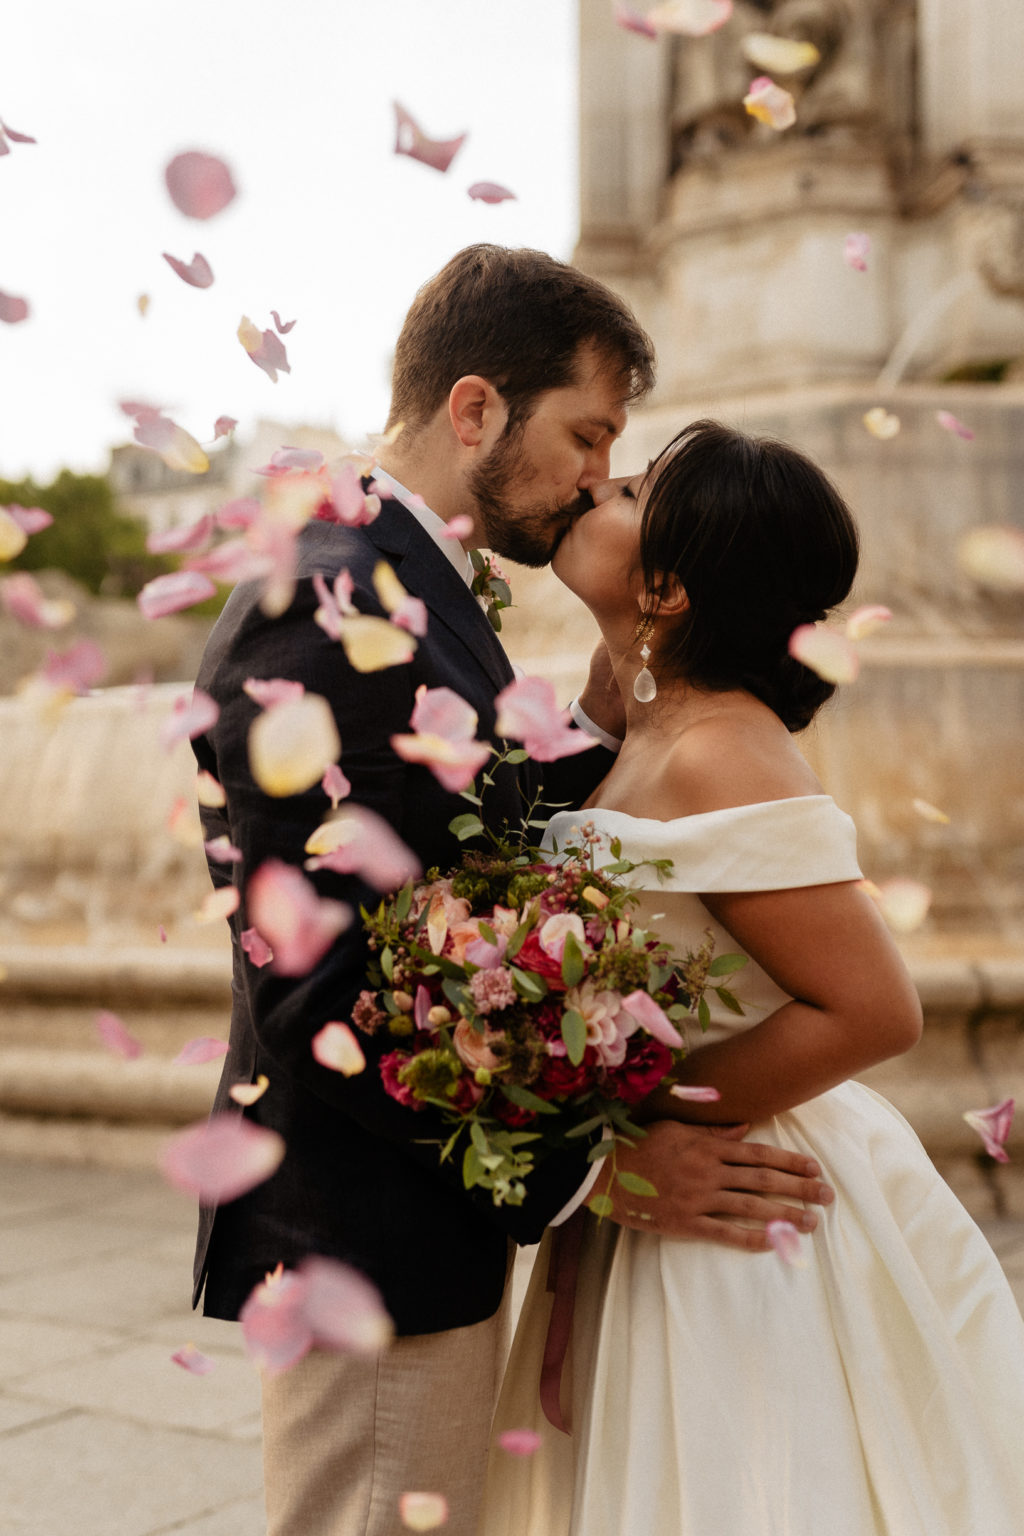 Intimate Vow Renewal inspiration in Paris